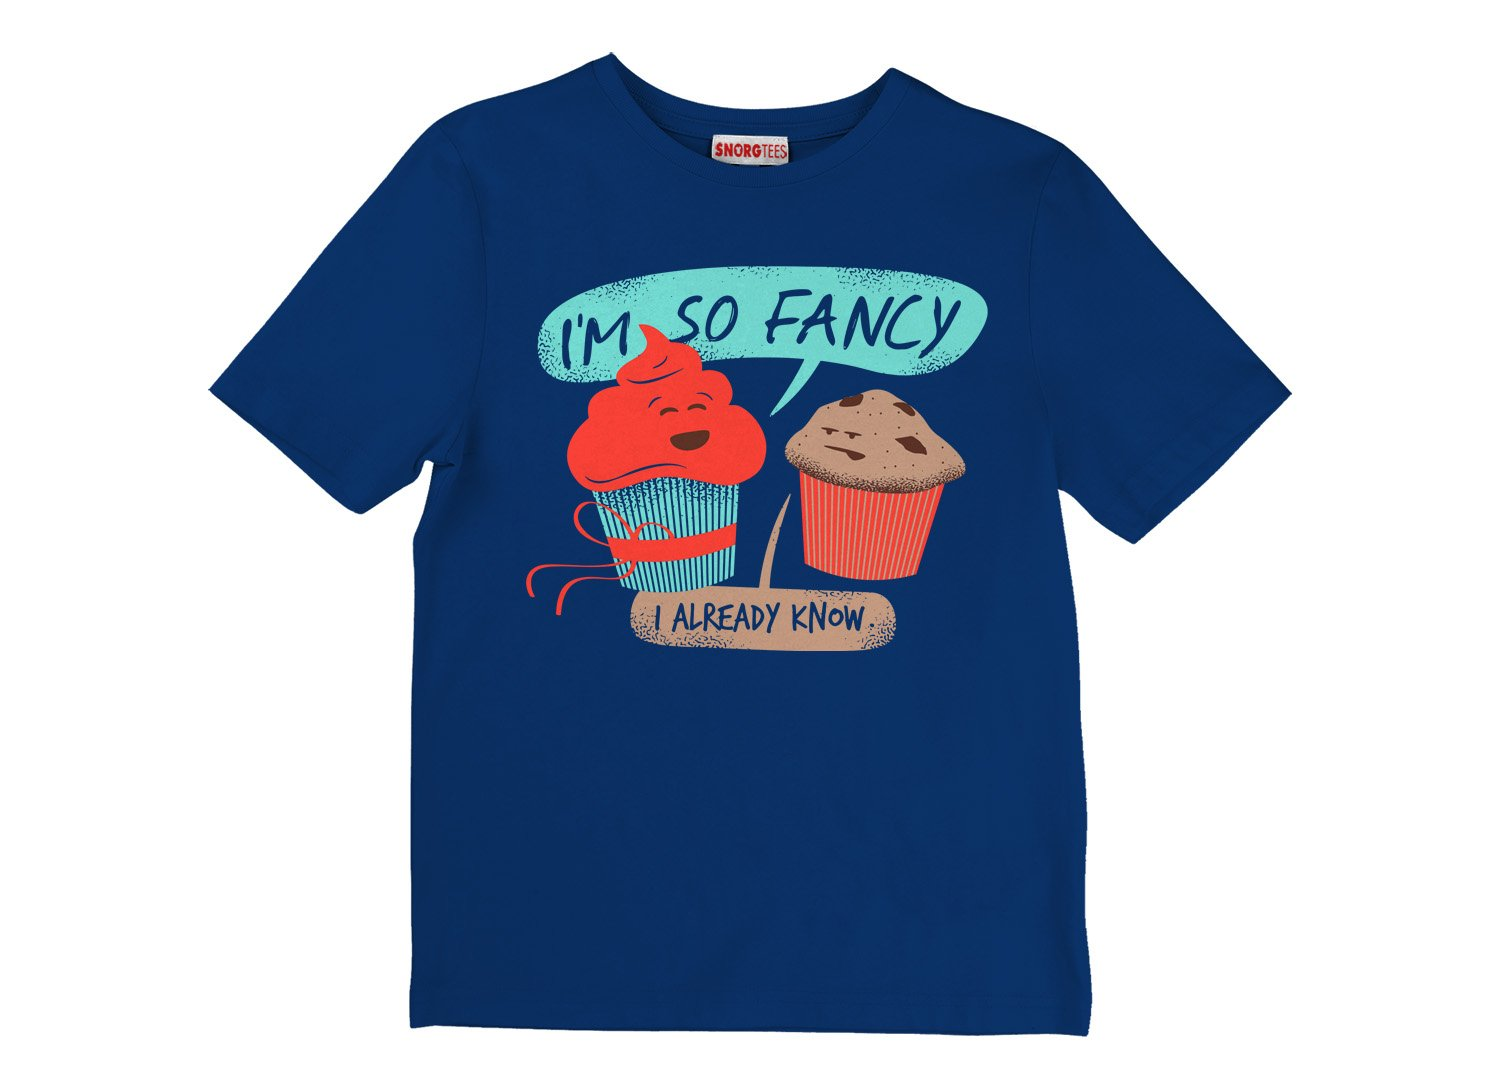 I'm So Fancy on Kids T-Shirt